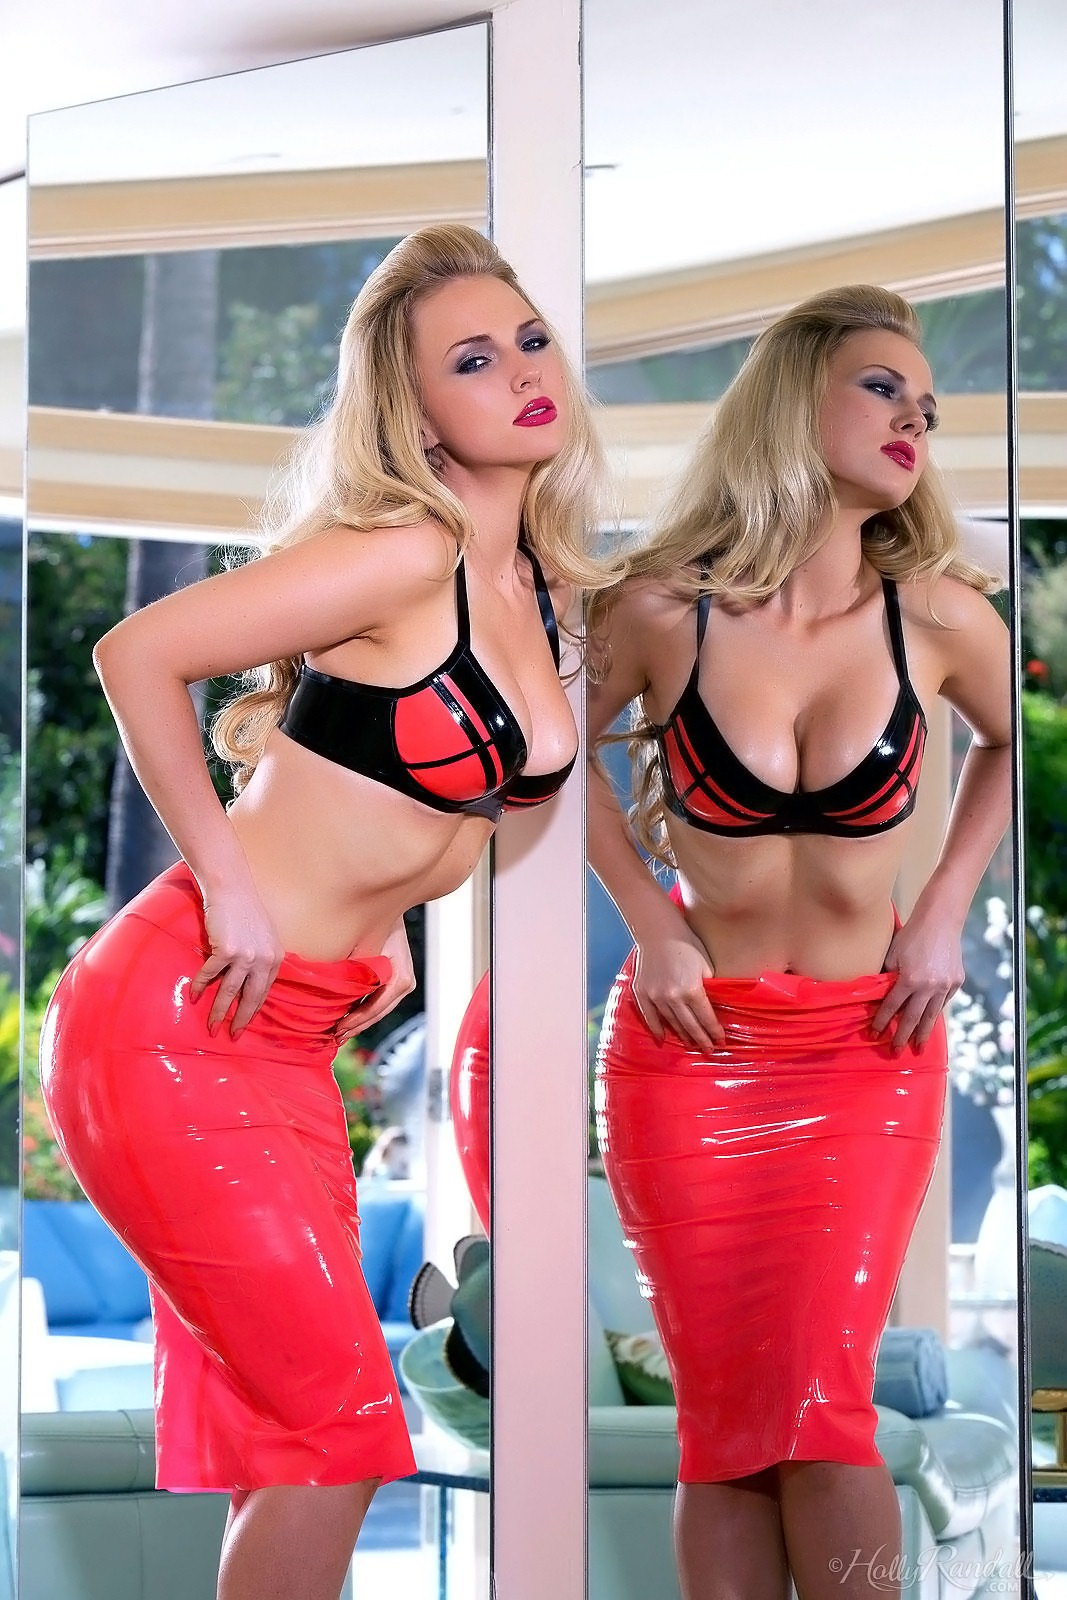 Ancilla Tilia nude in Pink Latex for Holly Randall | Daily Girls @ Female Update